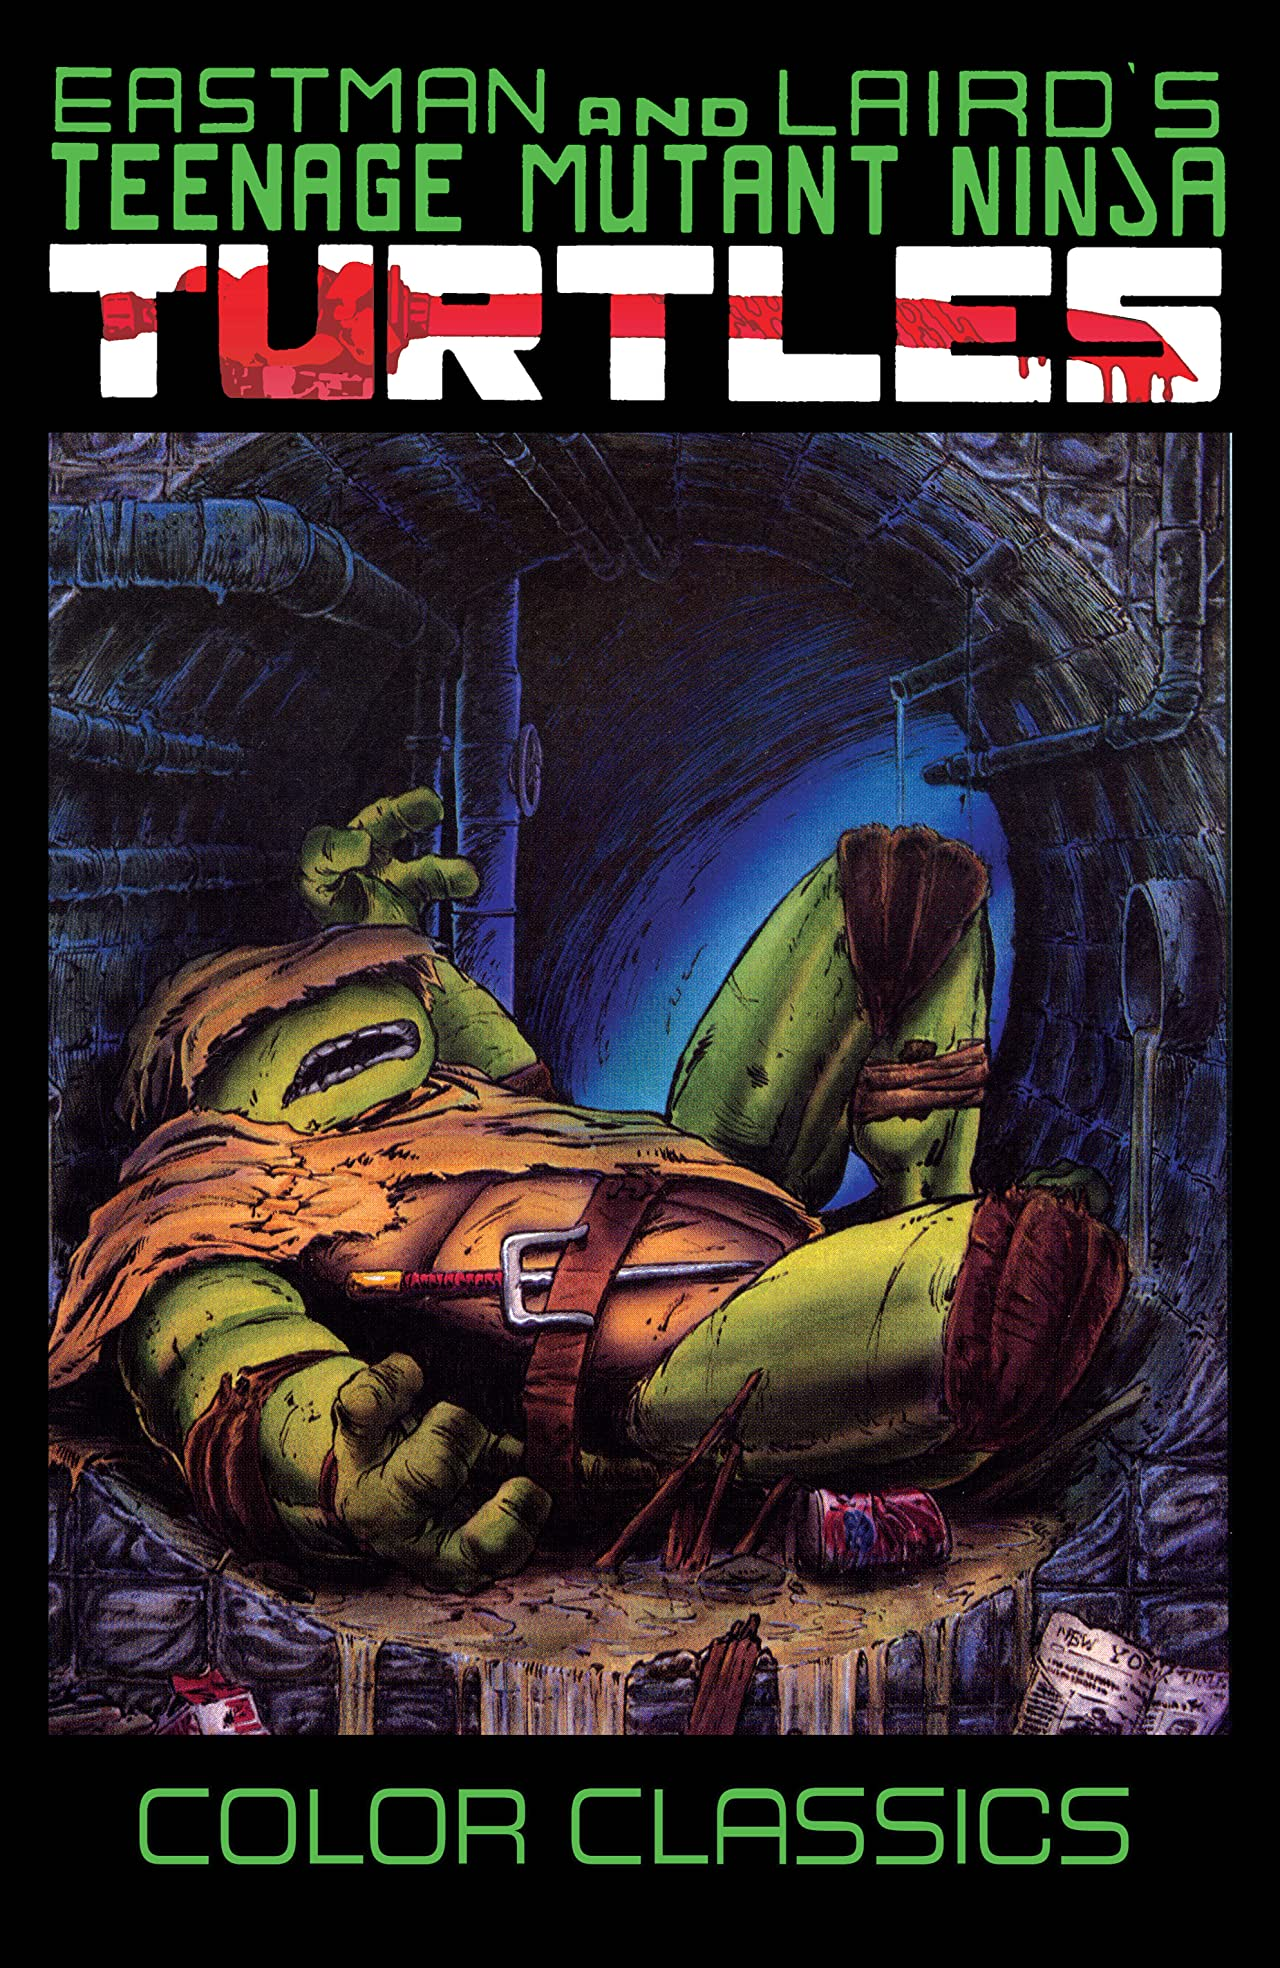 Teenage Mutant Ninja Turtles Color Classics Vol. 3